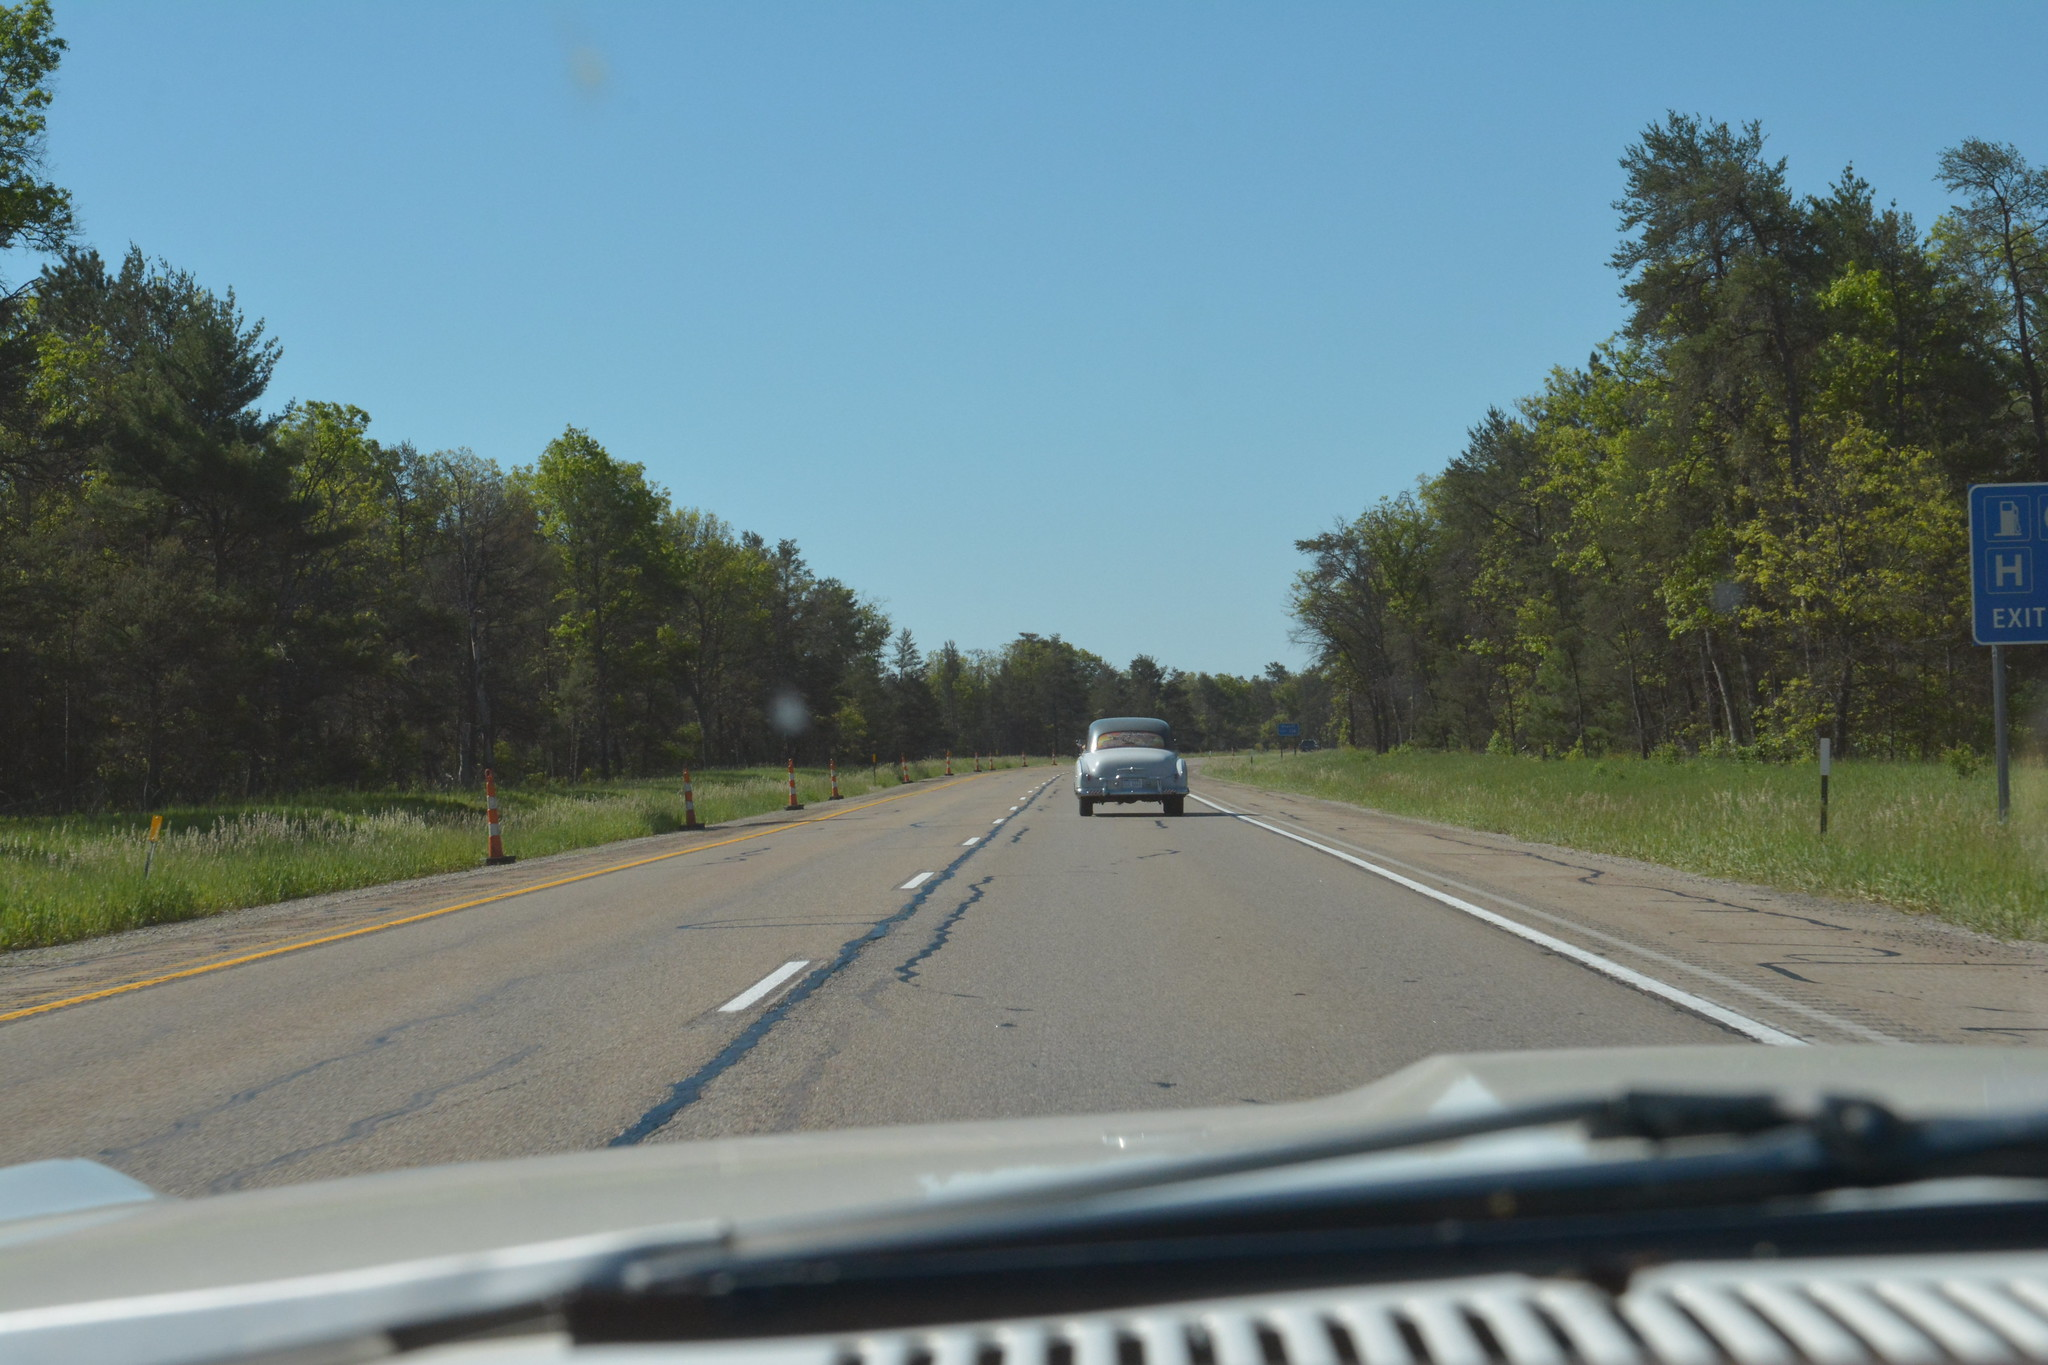 Heading for Dearborn \